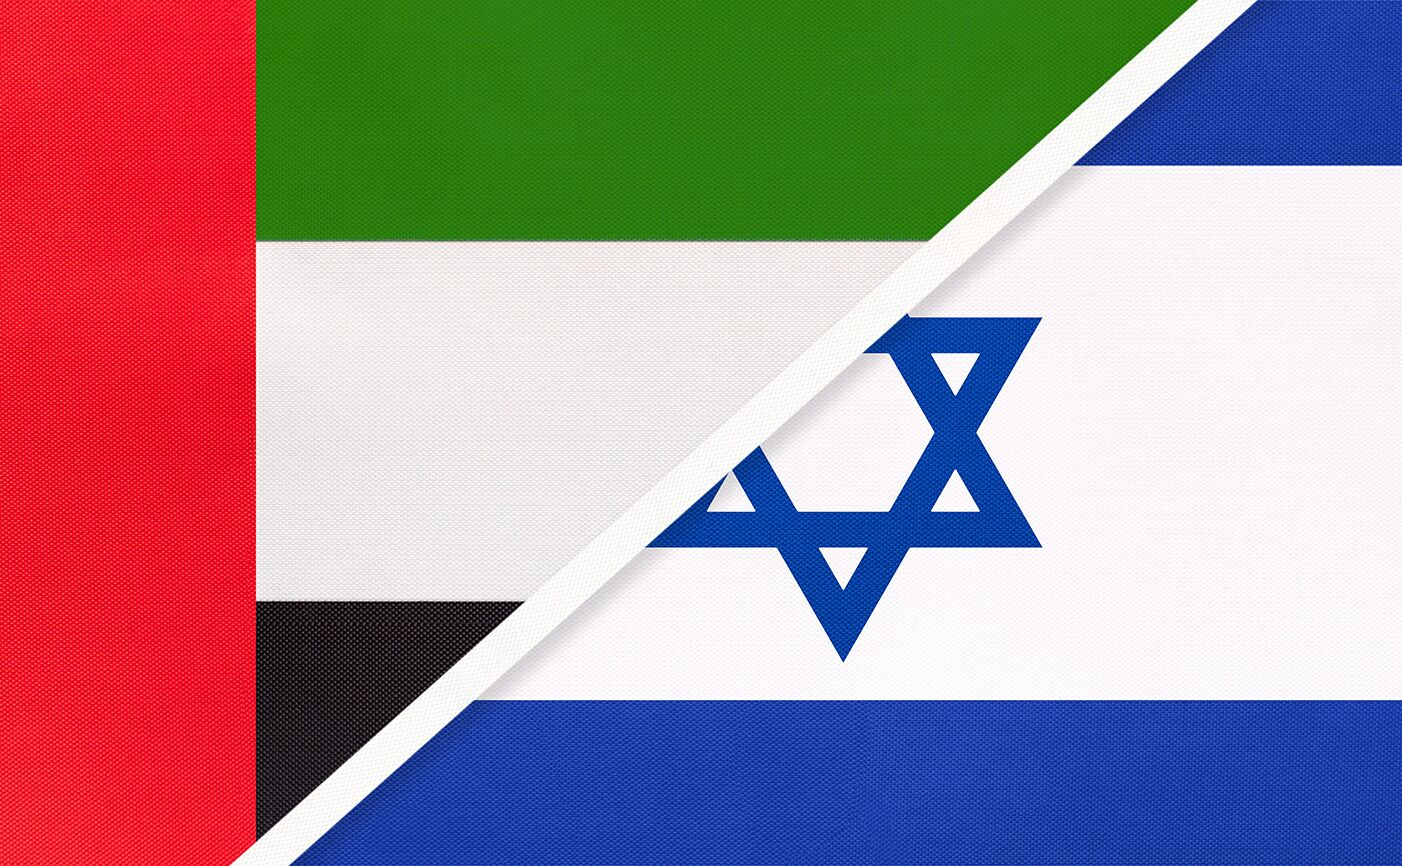 Business education as a pillar for UAE-Israel relations